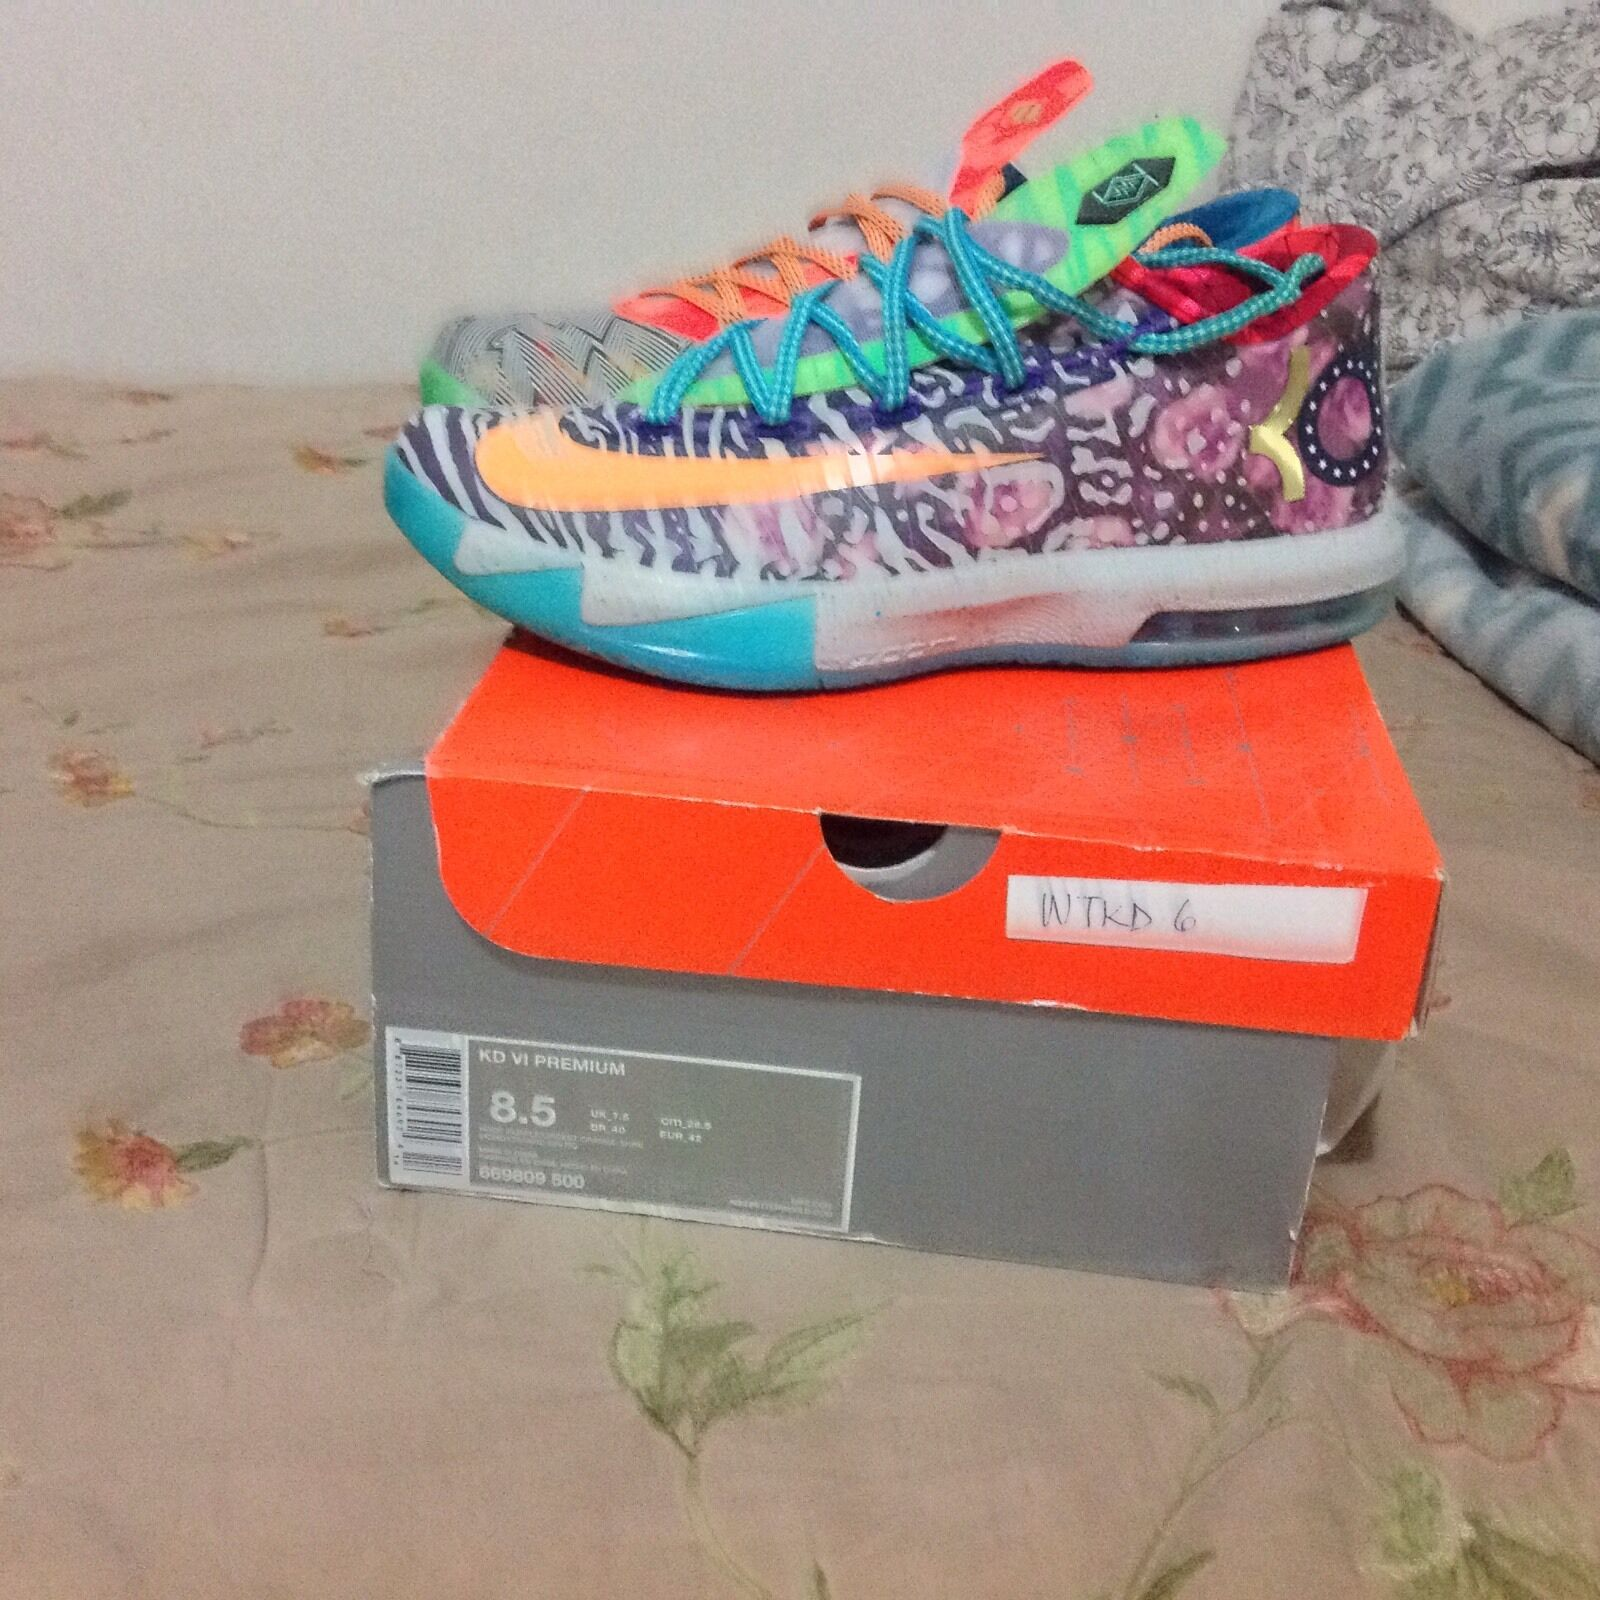 Nike KD 6 What The KD Air Jordan 1, 2, 3, 4, 5, 6, 7, 8, 9, 10, 11